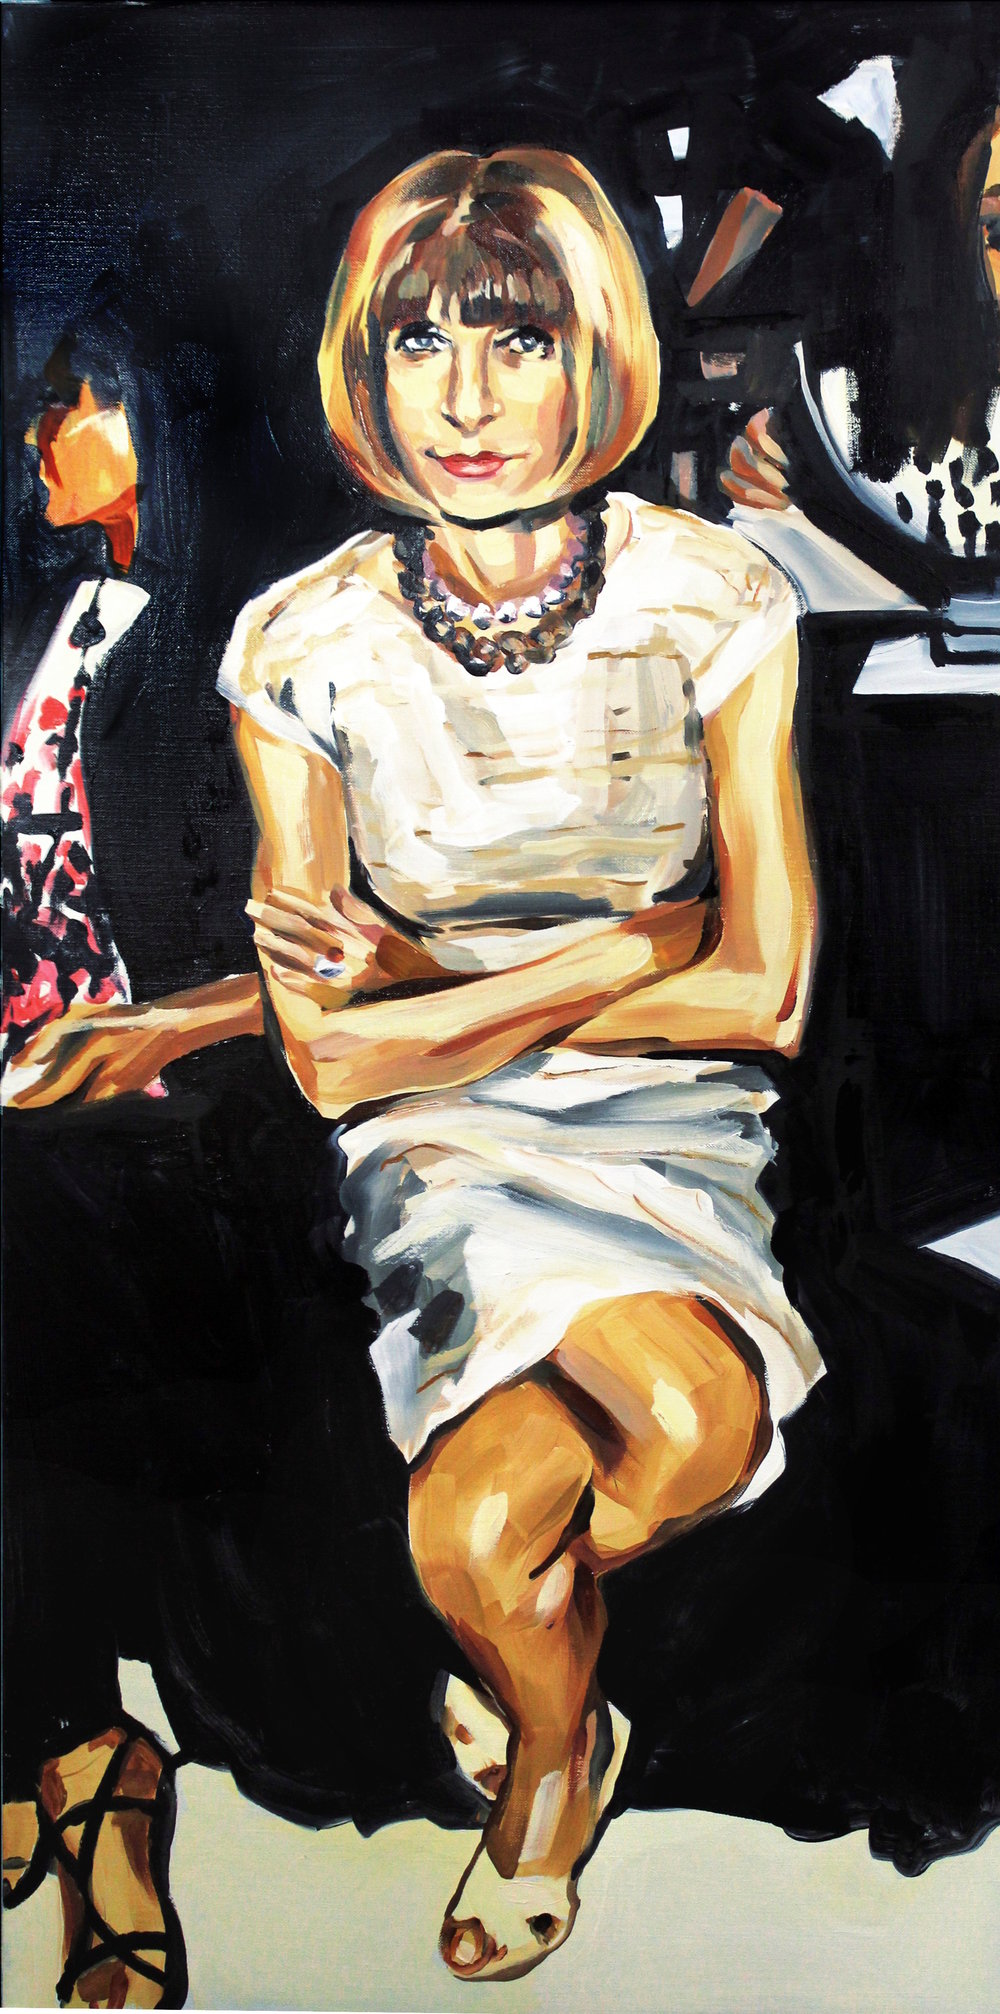 Laura Collins Anna Wintour Double Crossing Her Legs no. 3 oil on linen 24x48 2018.JPG